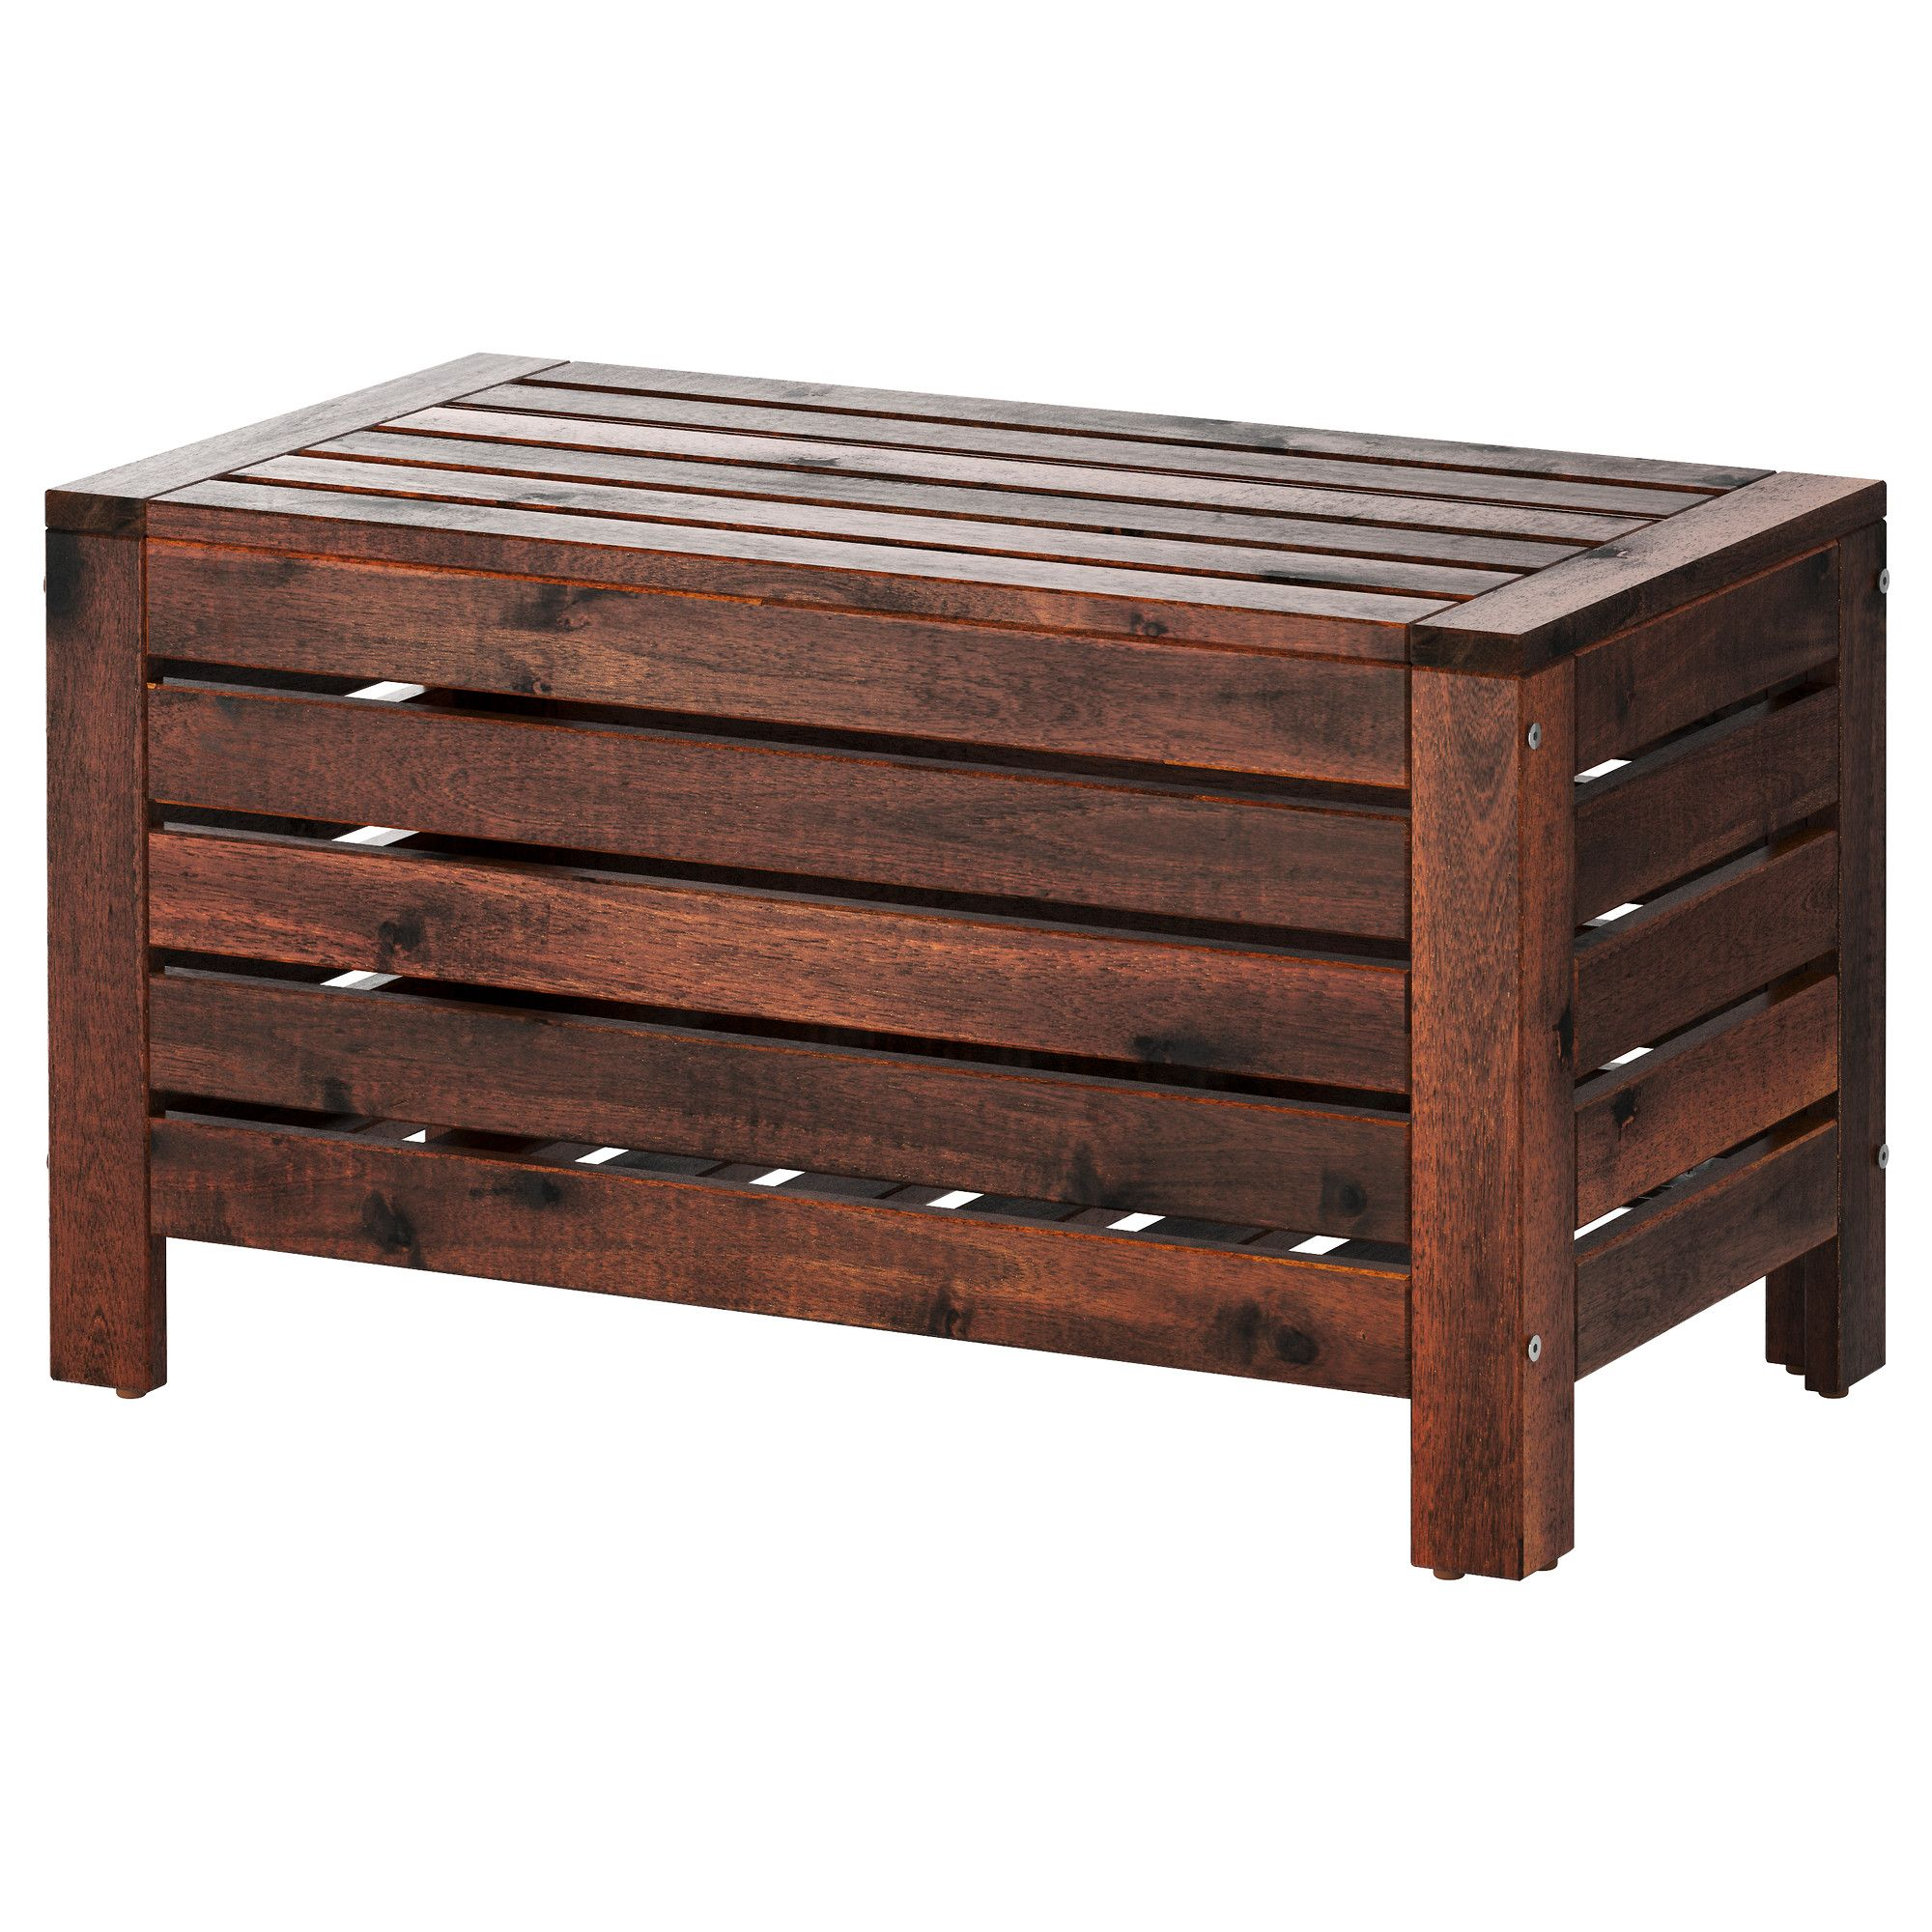 ÄpplarÖ Storage Bench Ikea This Guy Can Be A Seat Coffe Table Ottoman All At The Same Time